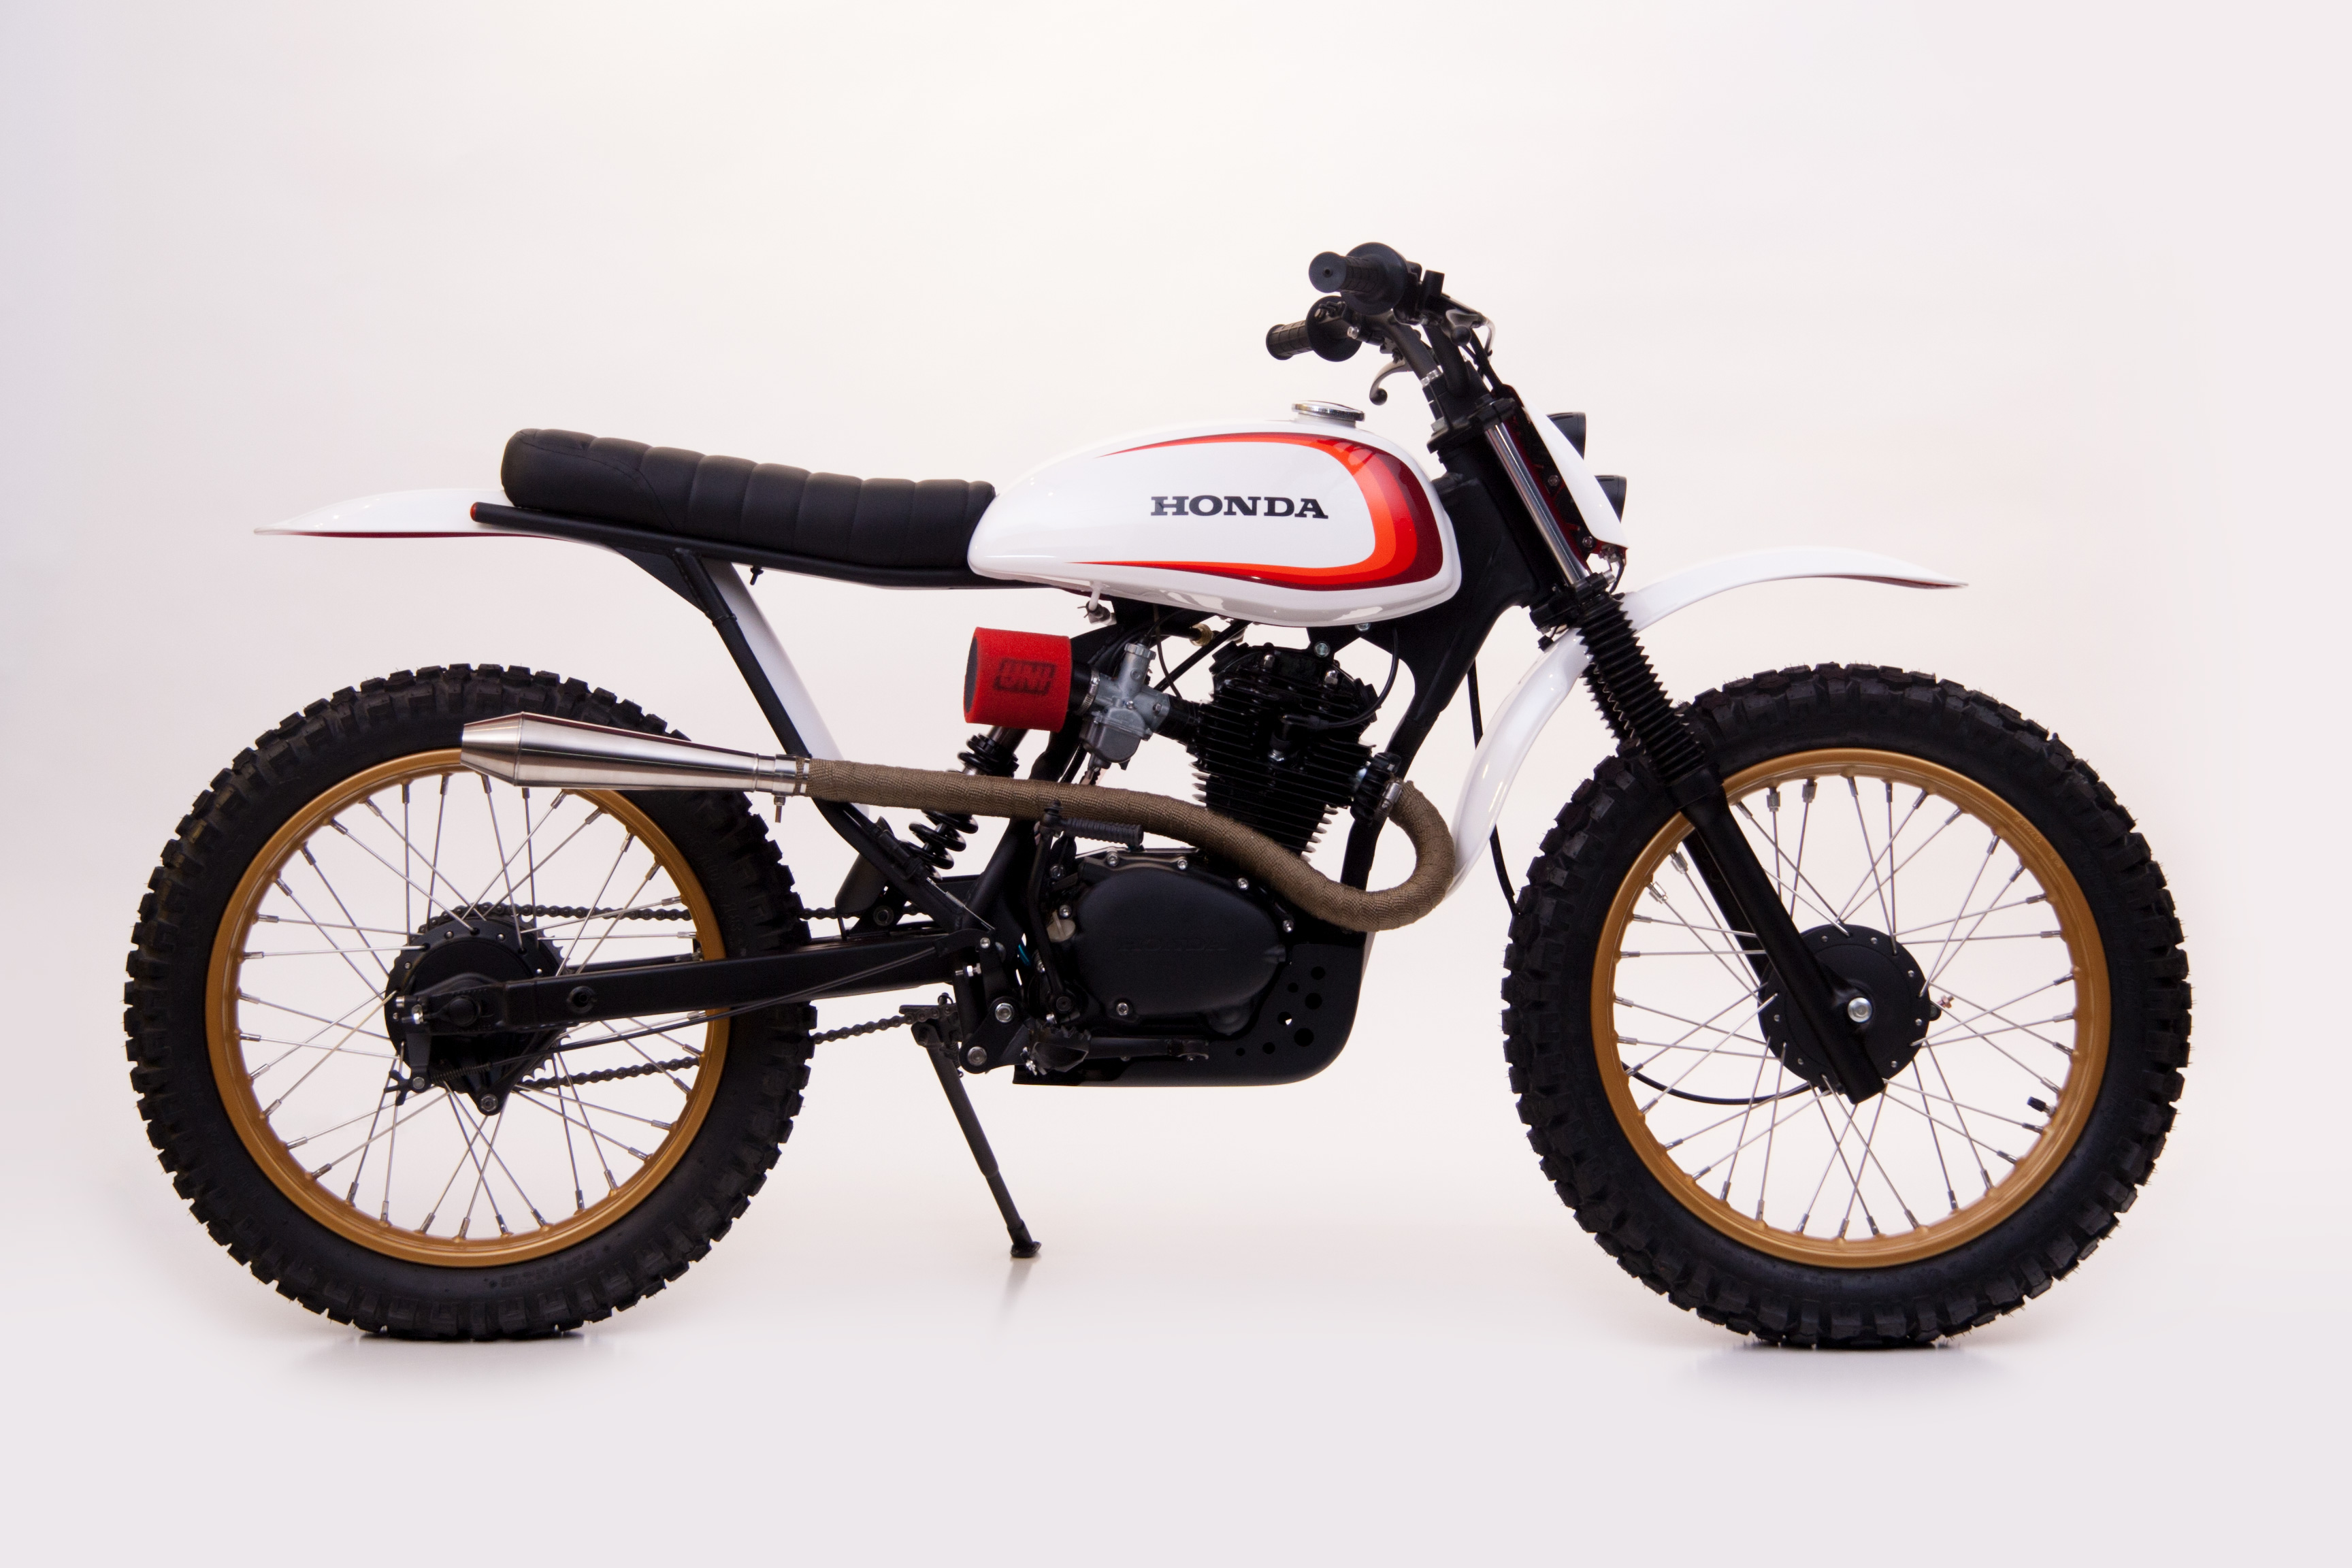 Honda SL125 with 18″ wheels, stainless steel spokes, and dual sports tires